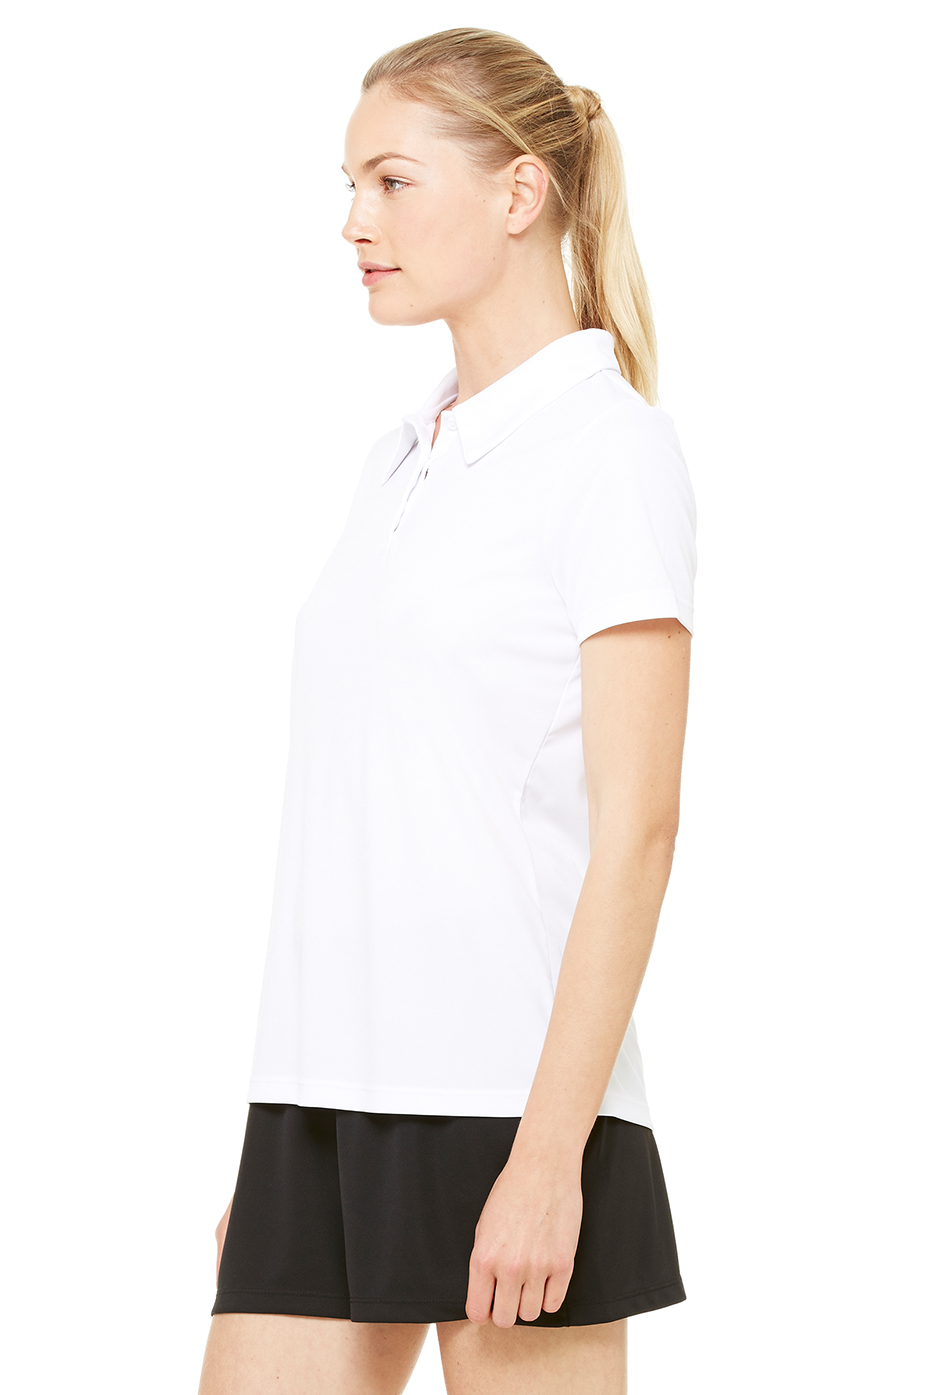 Workwear World WW Aircool Mens /& Ladies Unisex Active Fitness Gym /& Sports Breathable Fabric Performance Polo Shirt